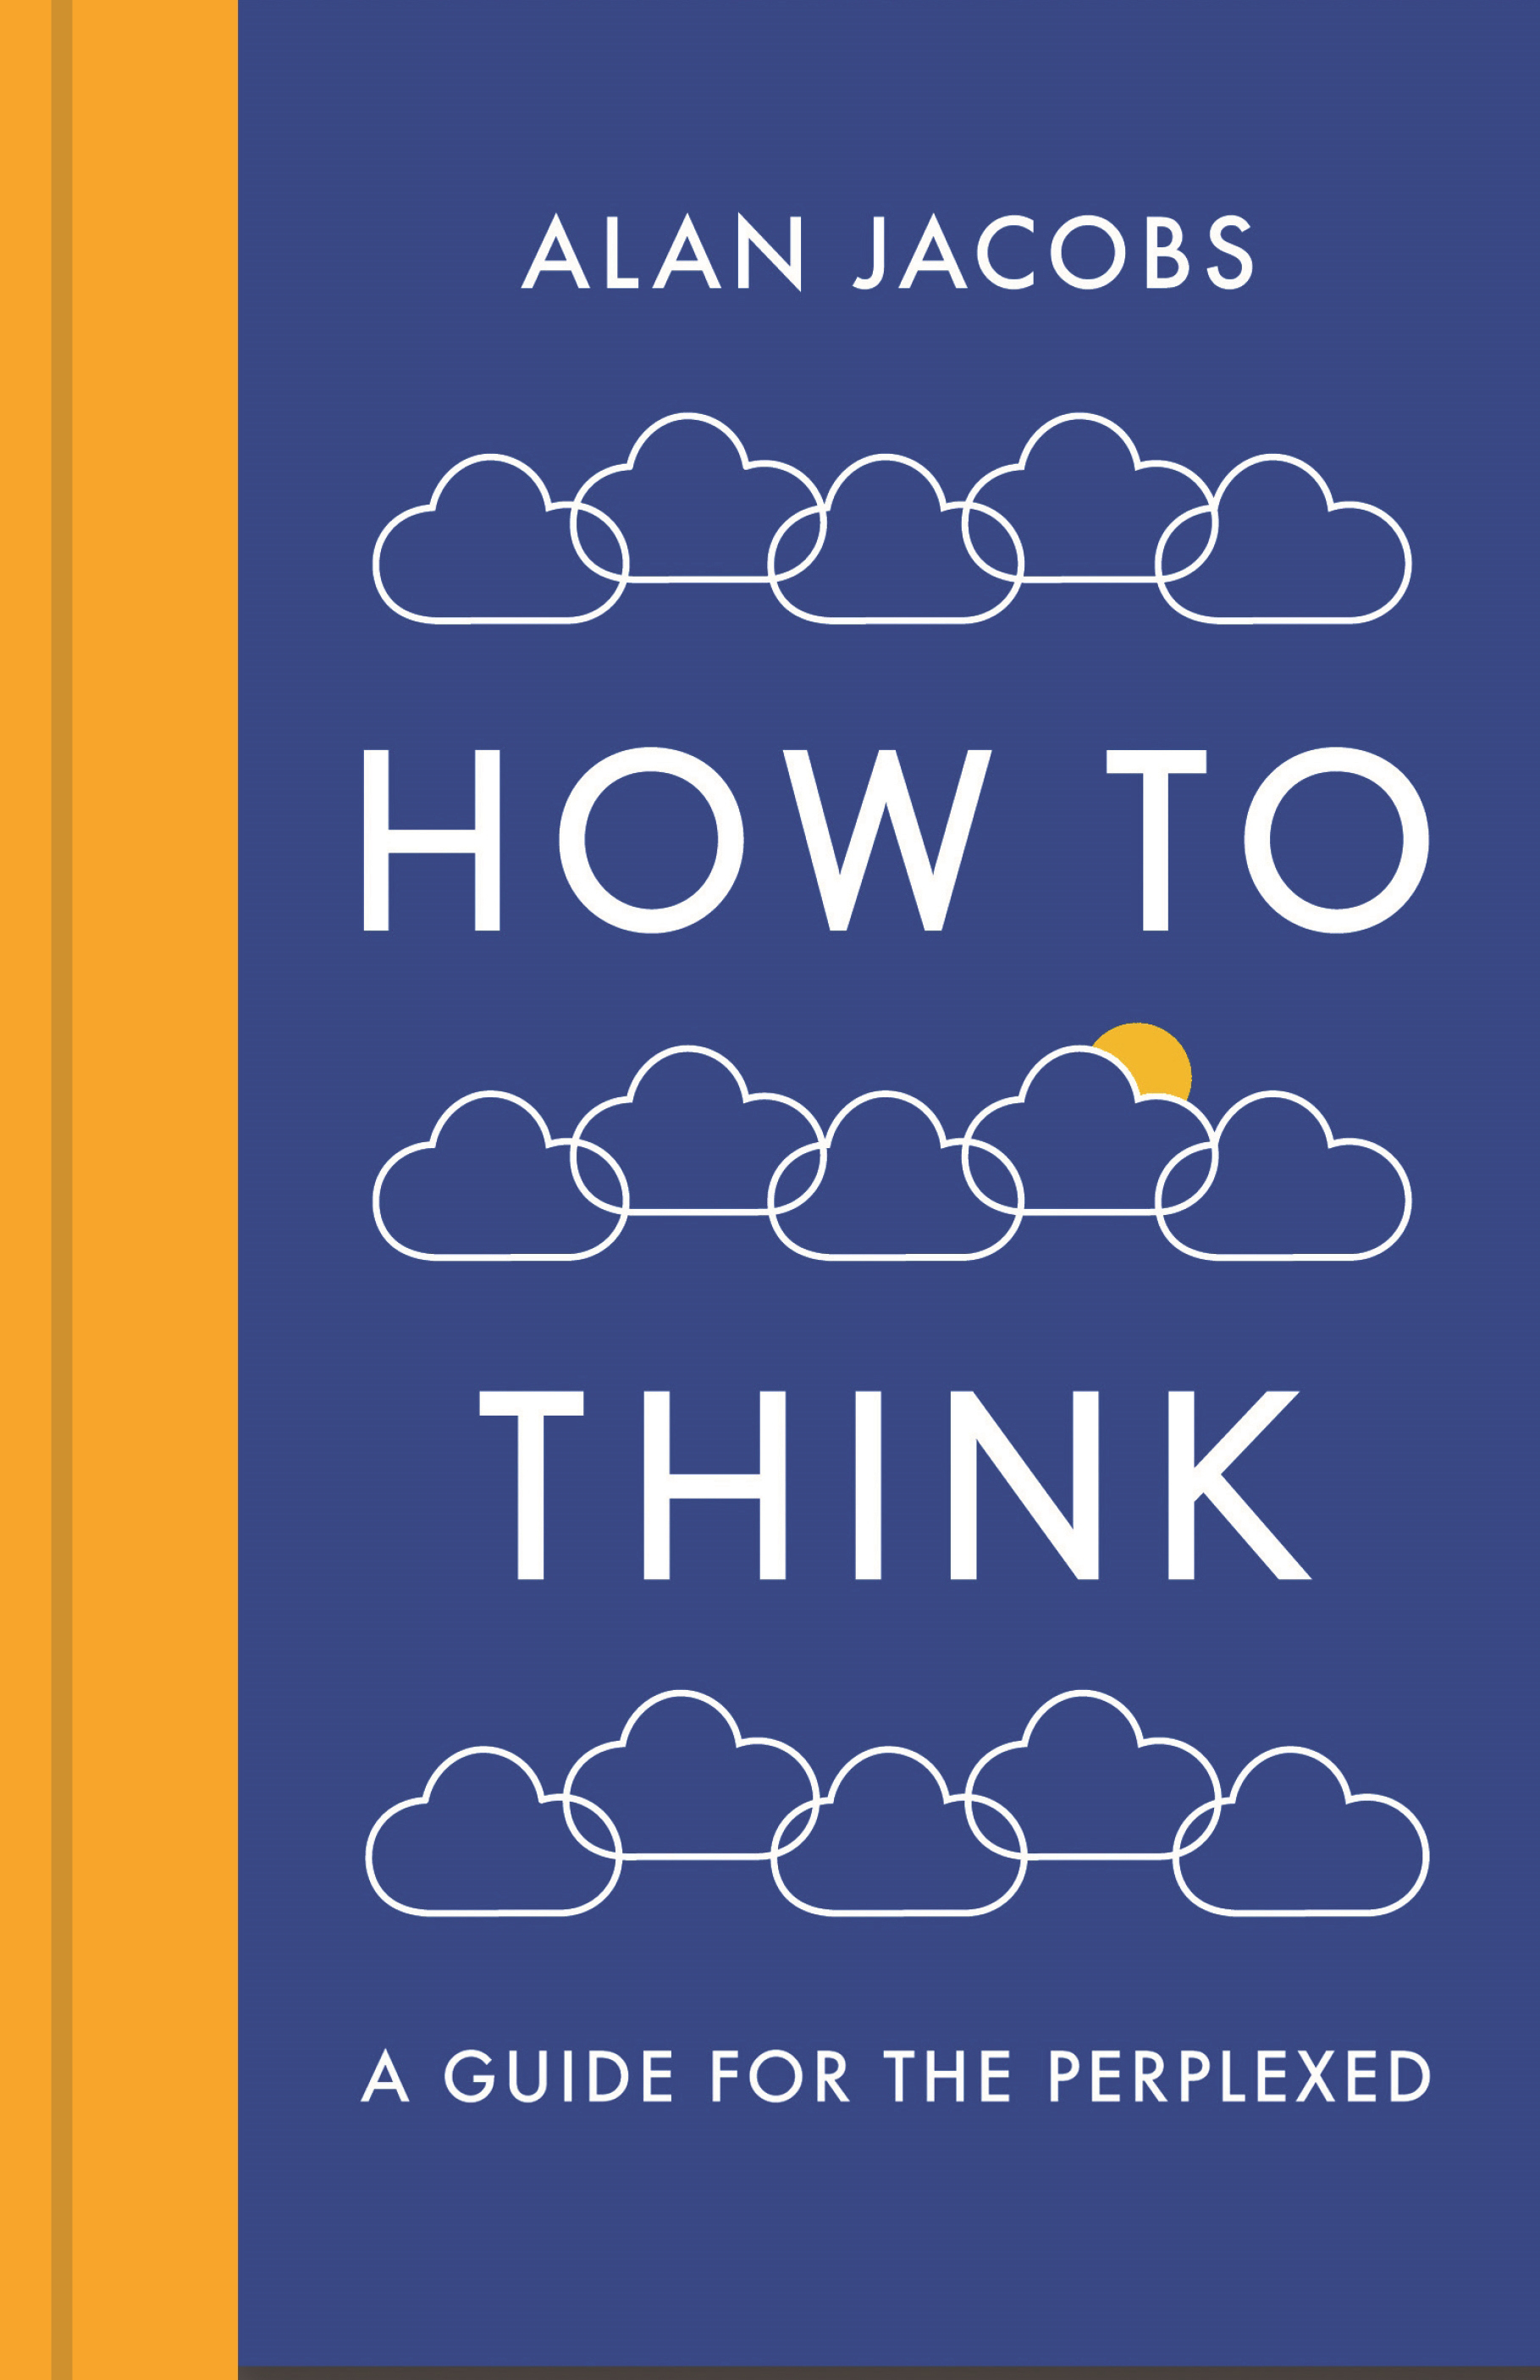 How To Think: A Guide for the Perplexed